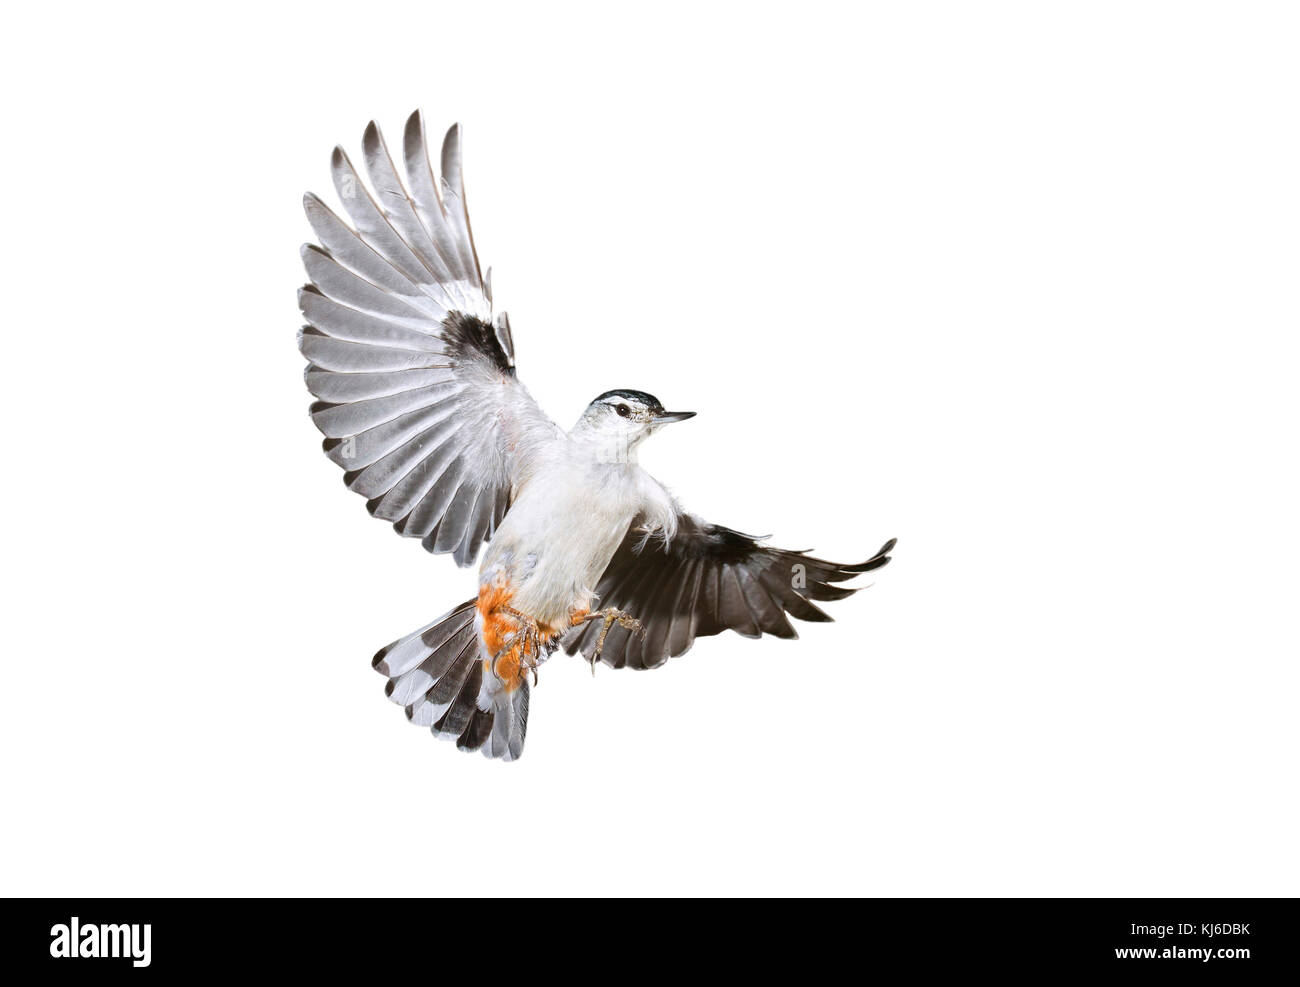 White-breasted nuthatch (Sitta carolinensis) flying, isolated on white background. - Stock Image